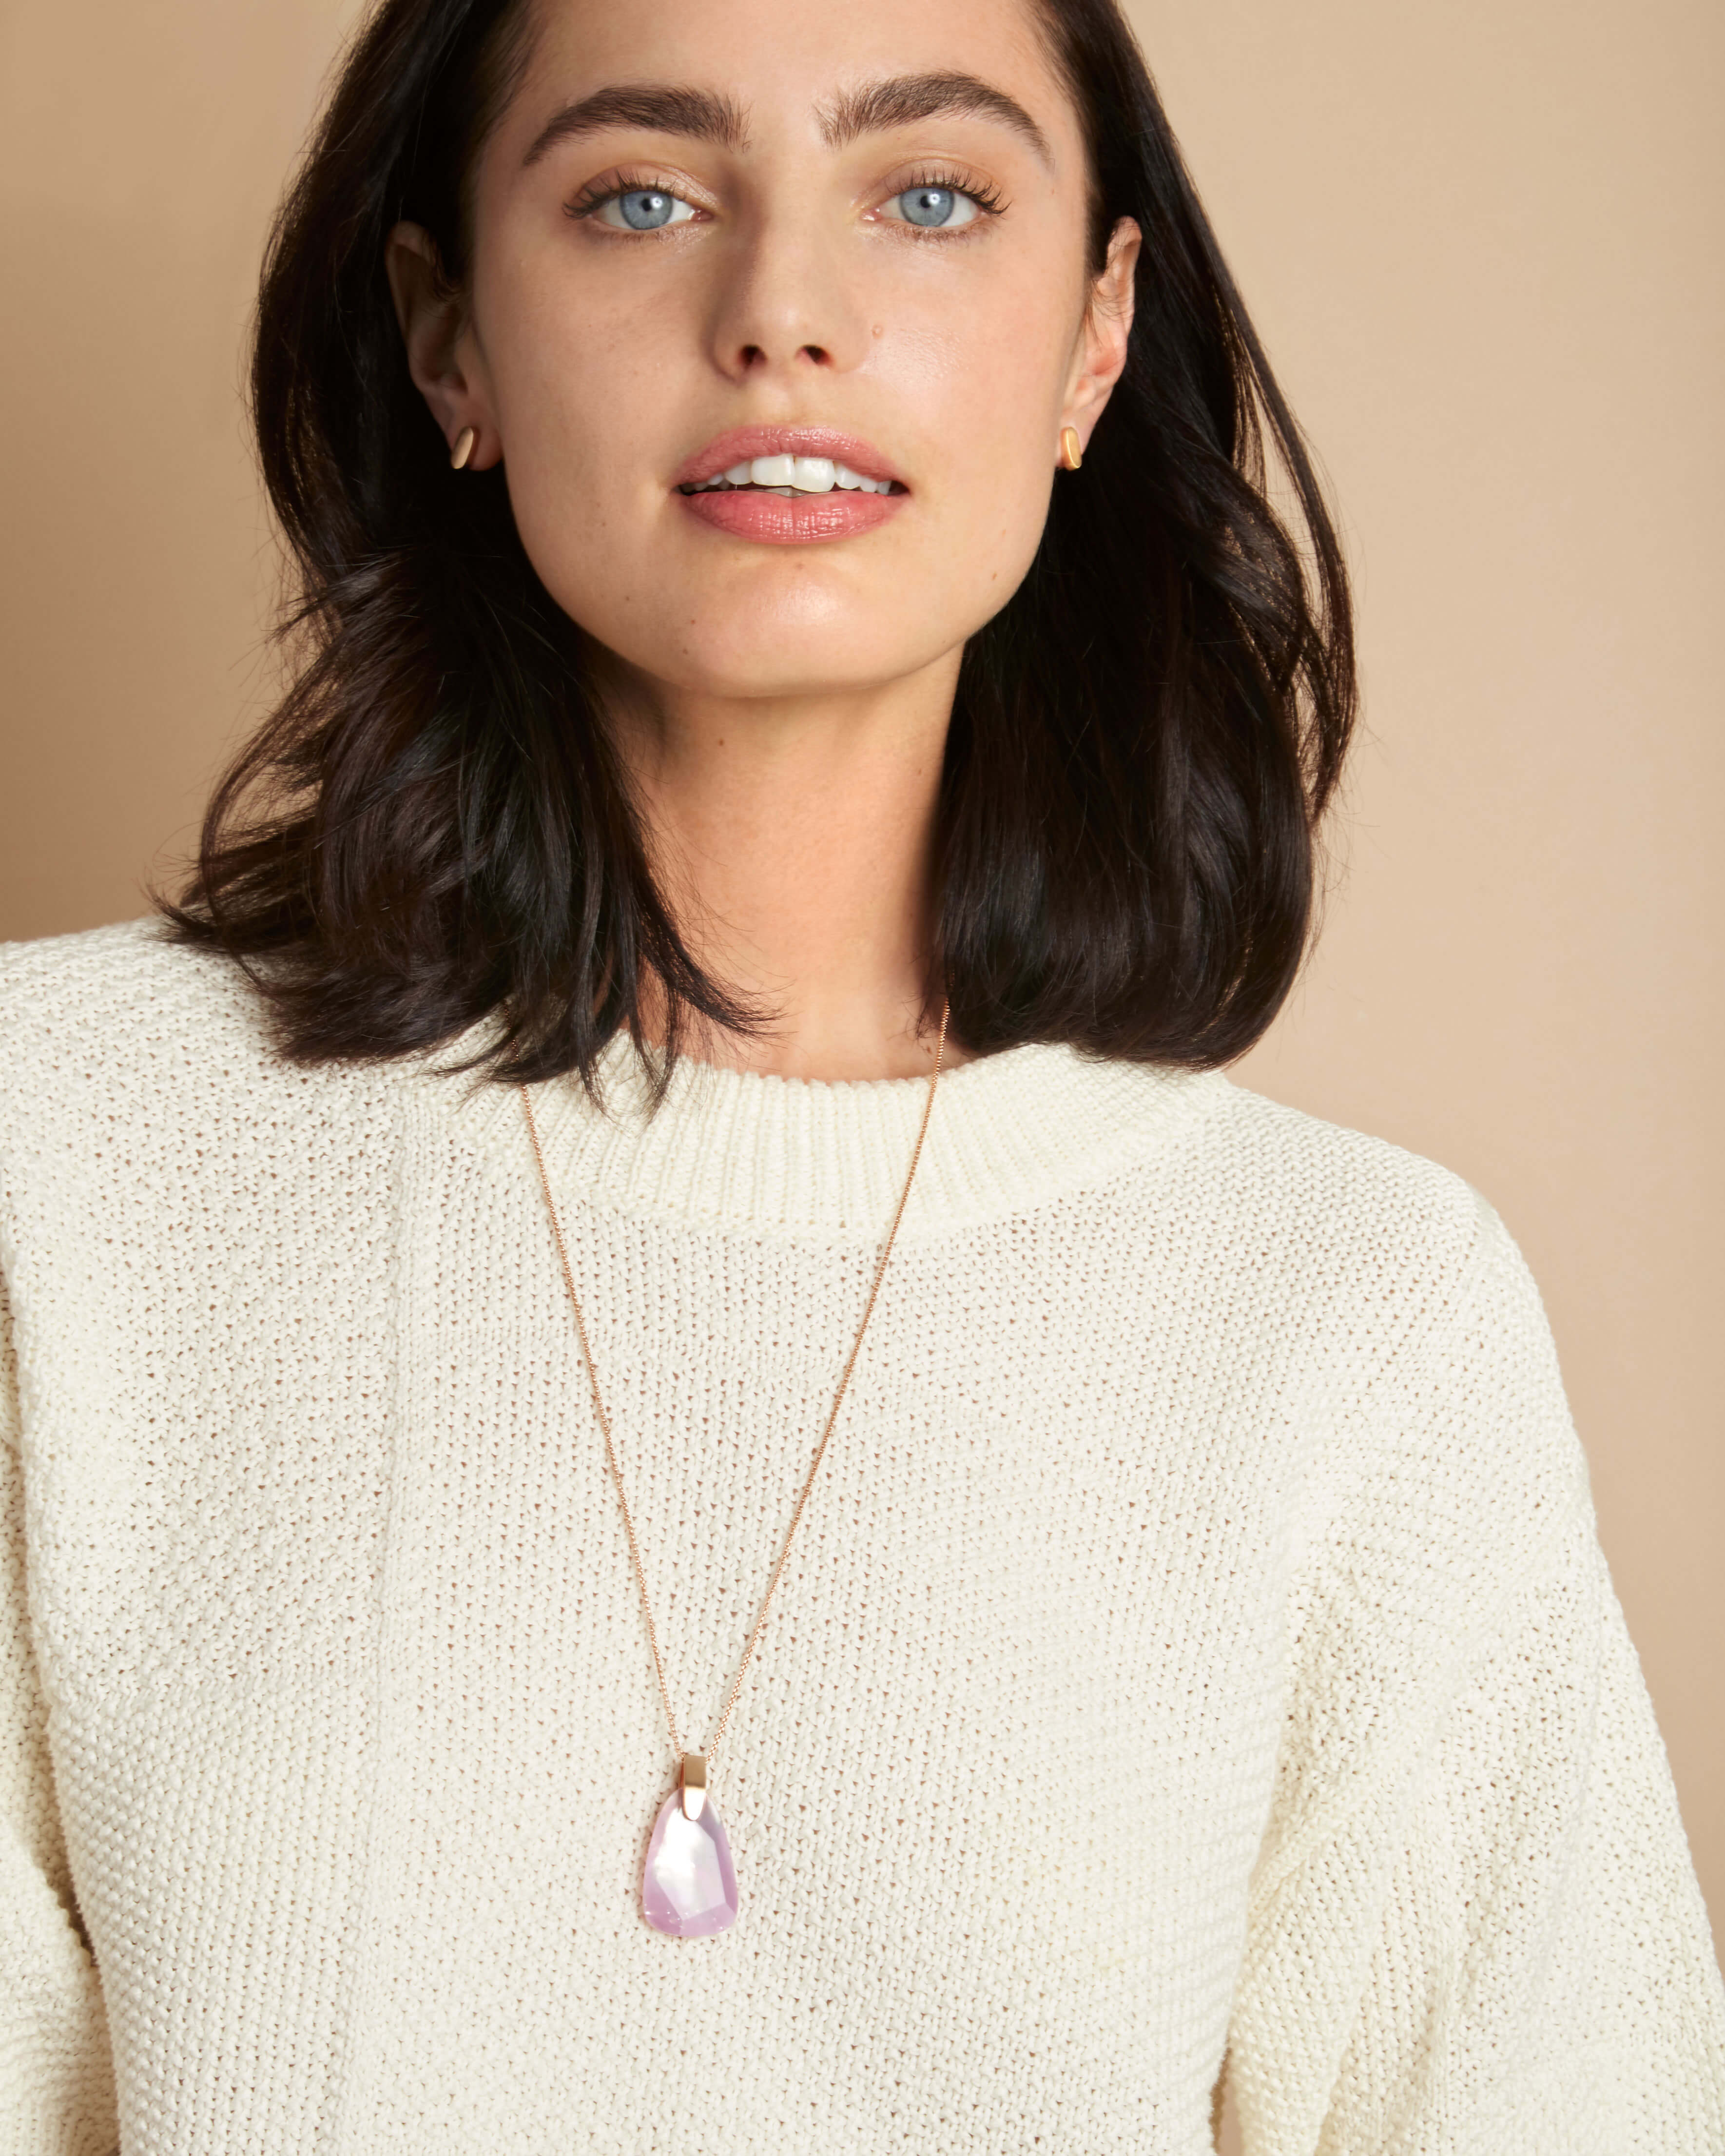 Maeve Rose Gold Long Pendant Necklace in Abalone Shell